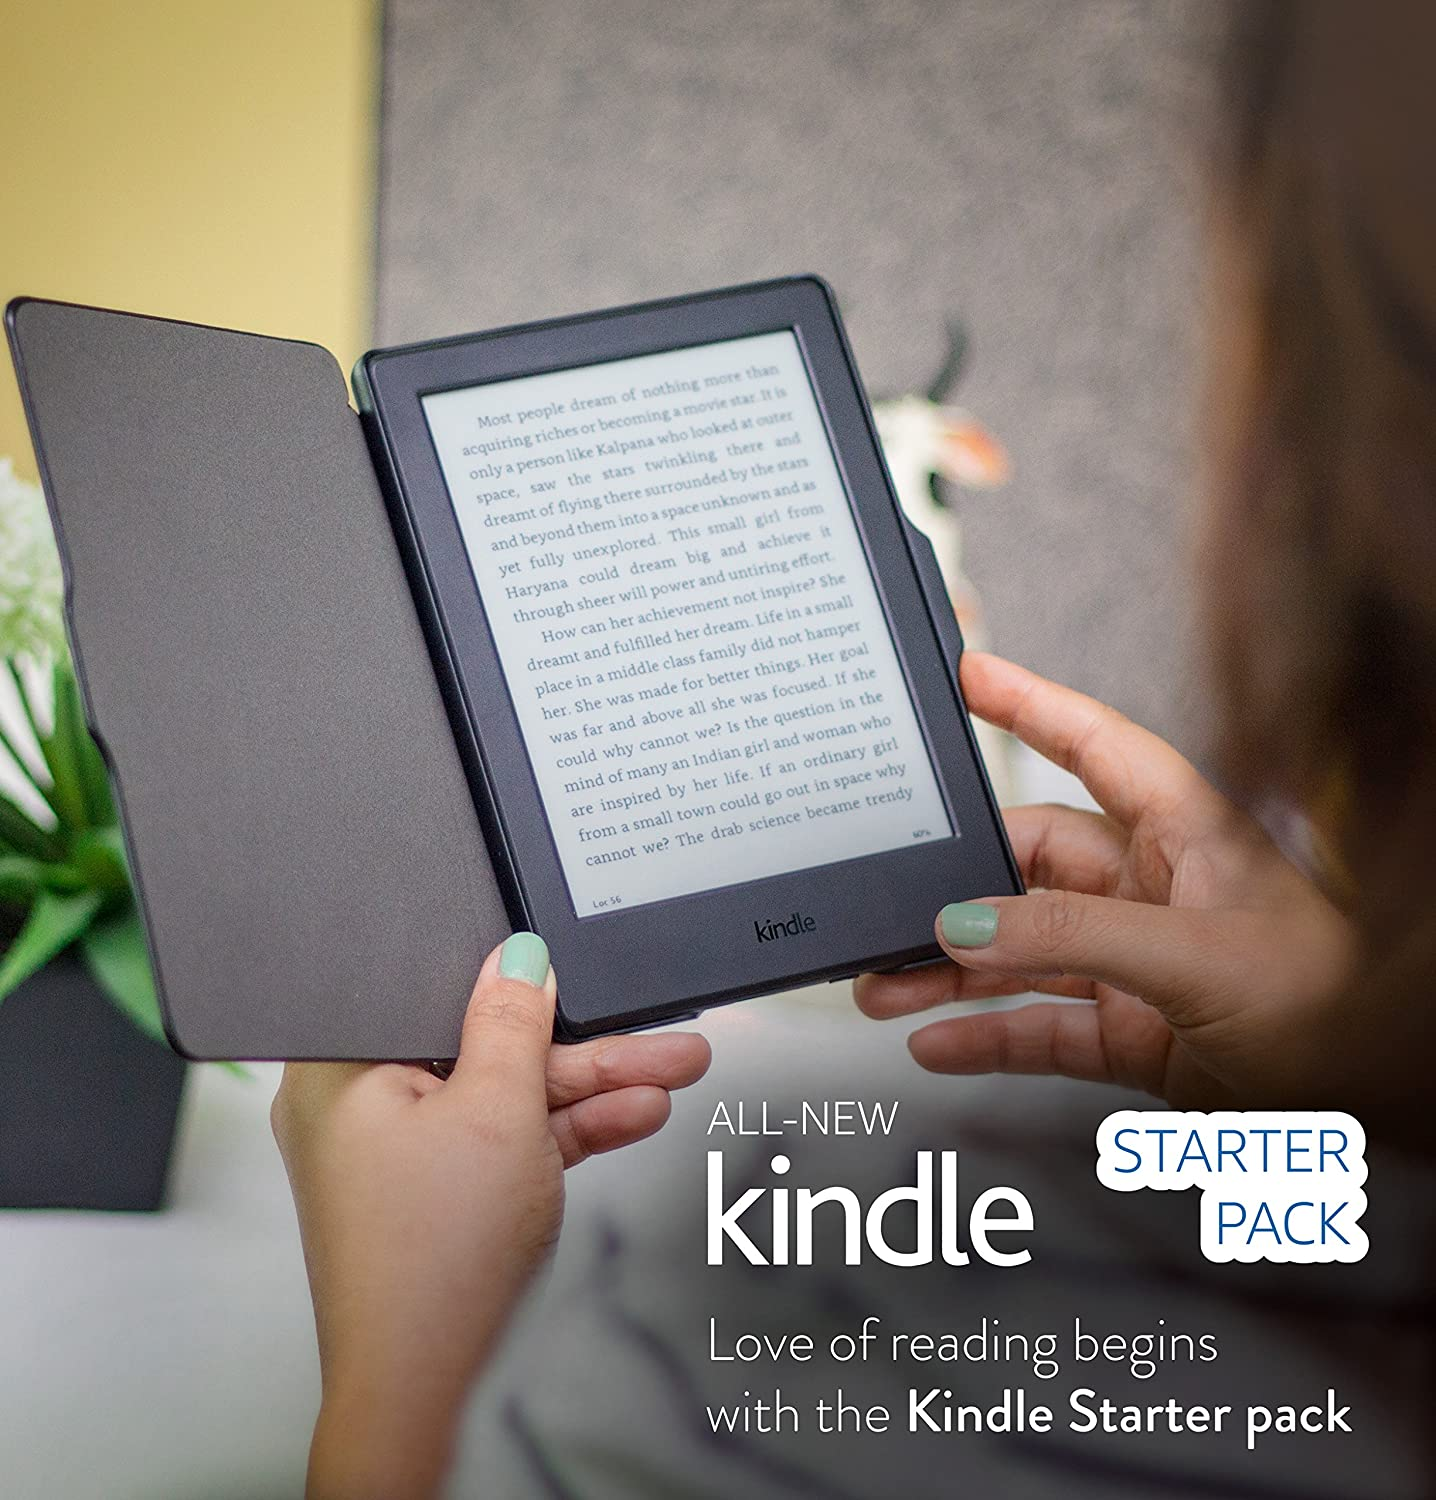 Kindle starter pack with all new kindle e reader black mrp rs kindle starter pack with all new kindle e reader black mrp rs 5999 nupro slimfit cover for kindle mrp rs 999 amazon kindle store fandeluxe Image collections